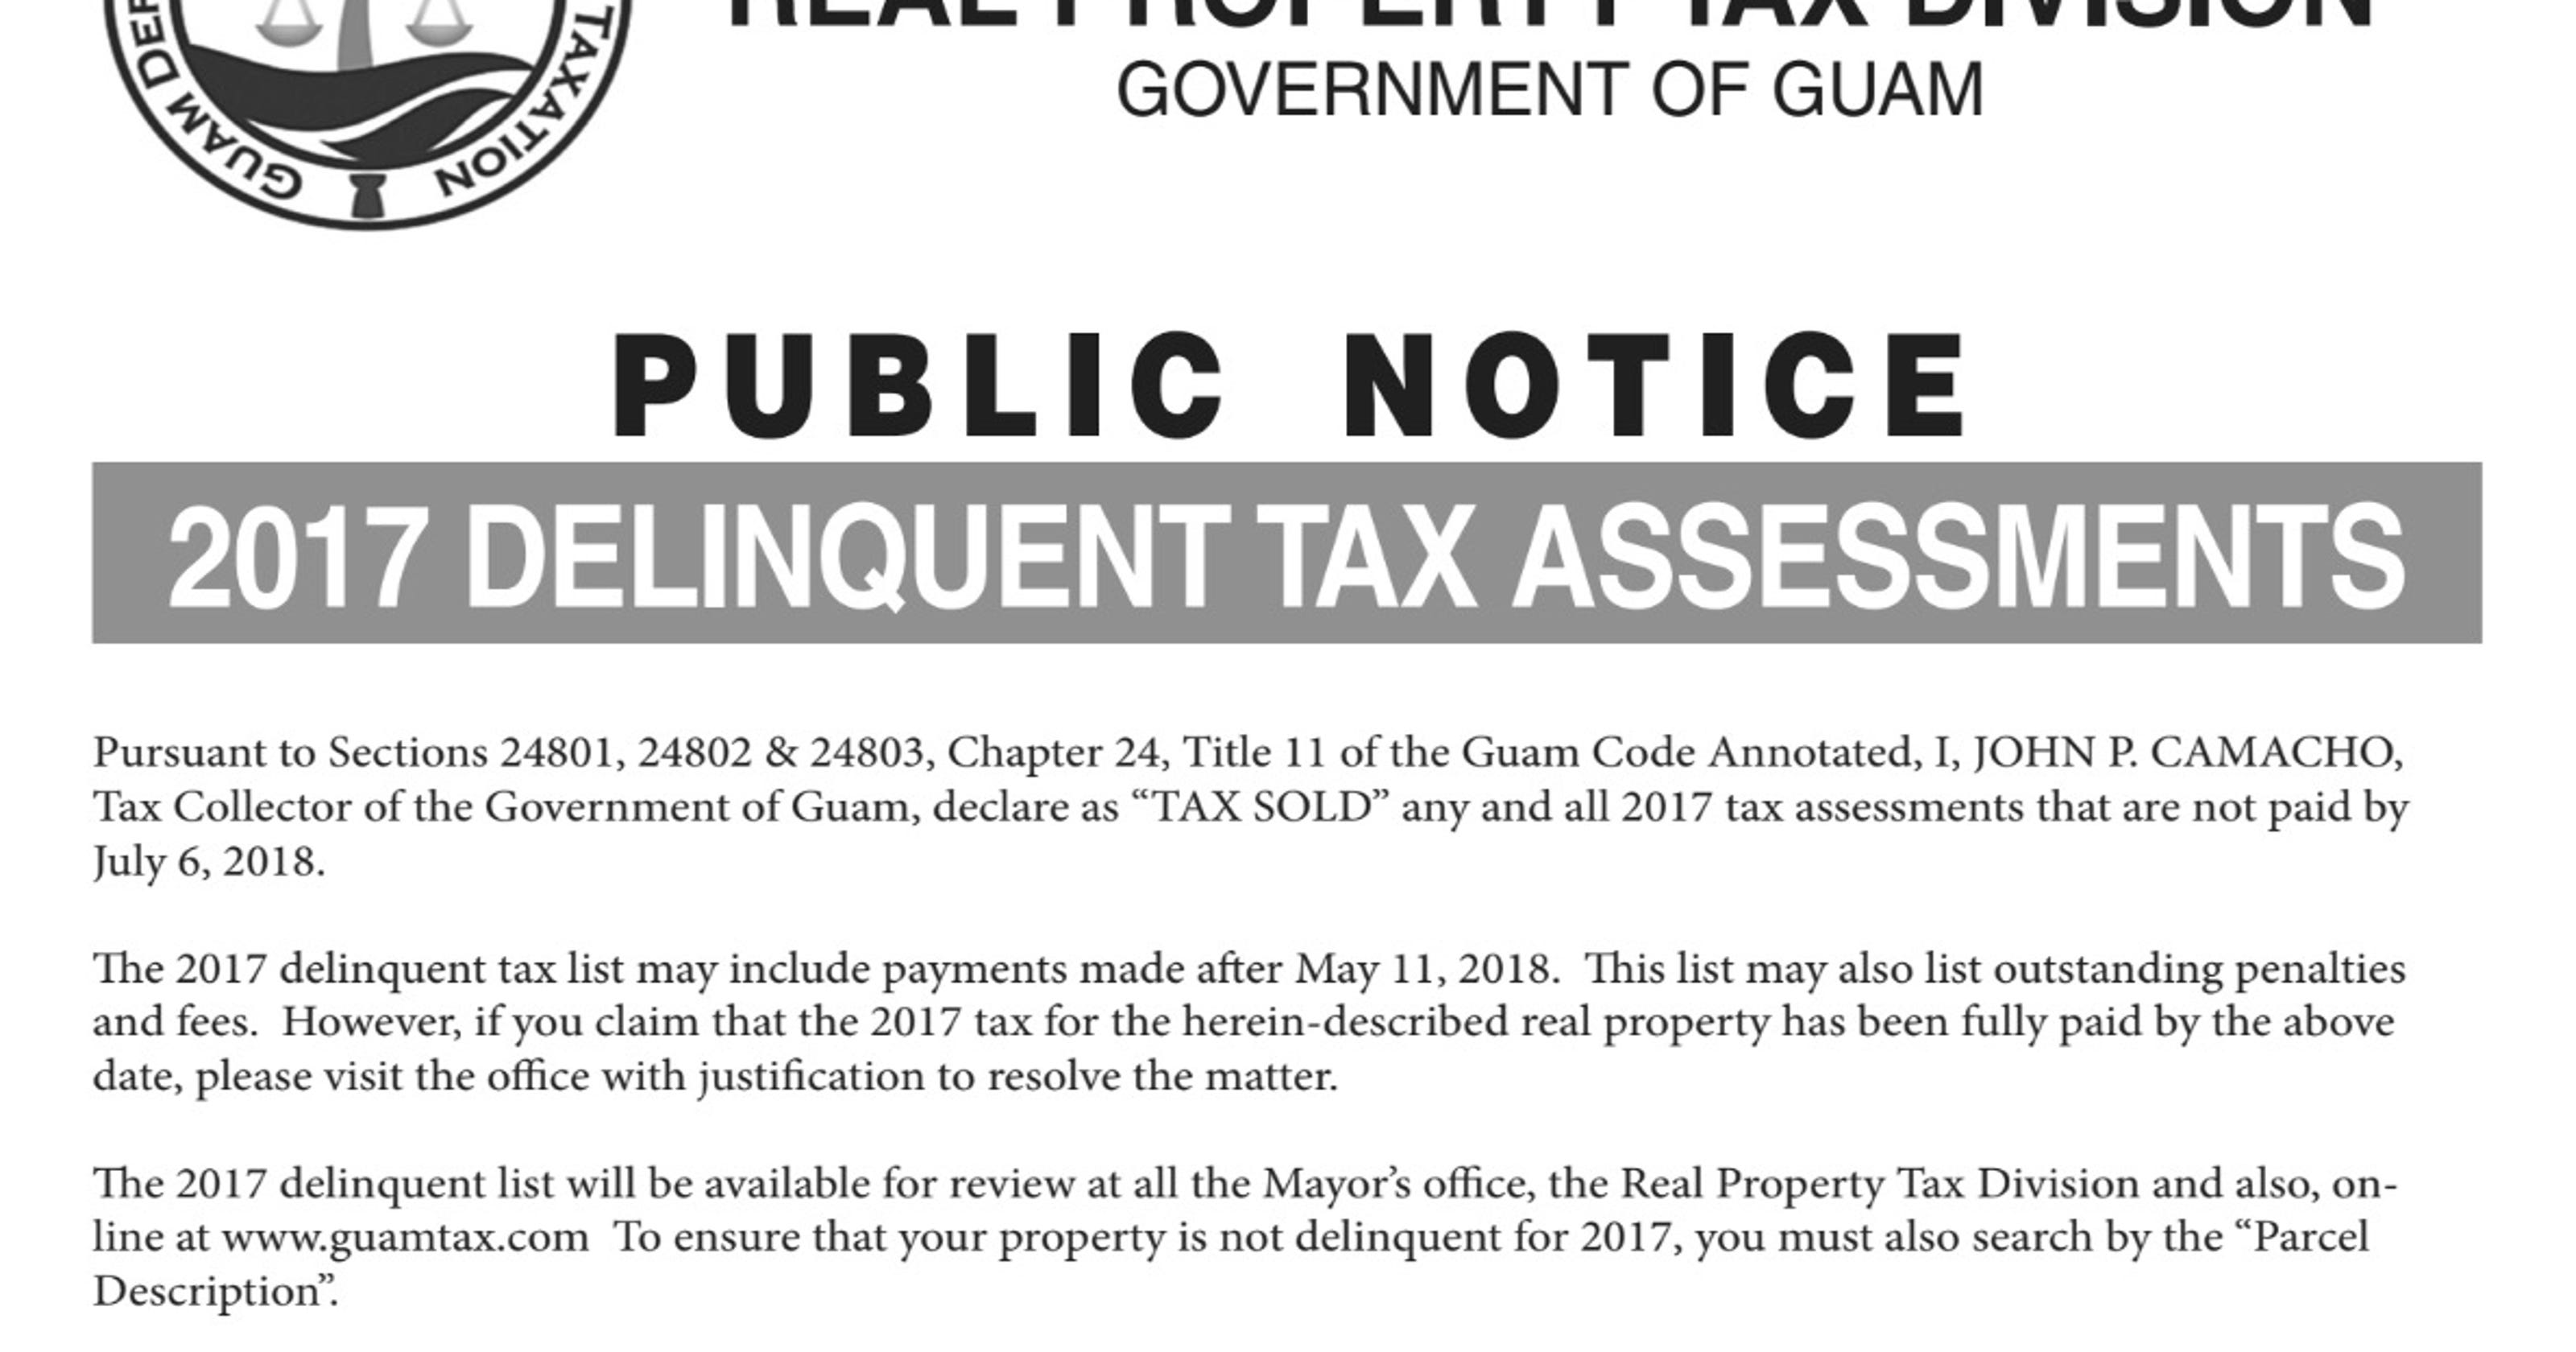 Guam Revenue and Taxation's 2017 delinquent tax assessments